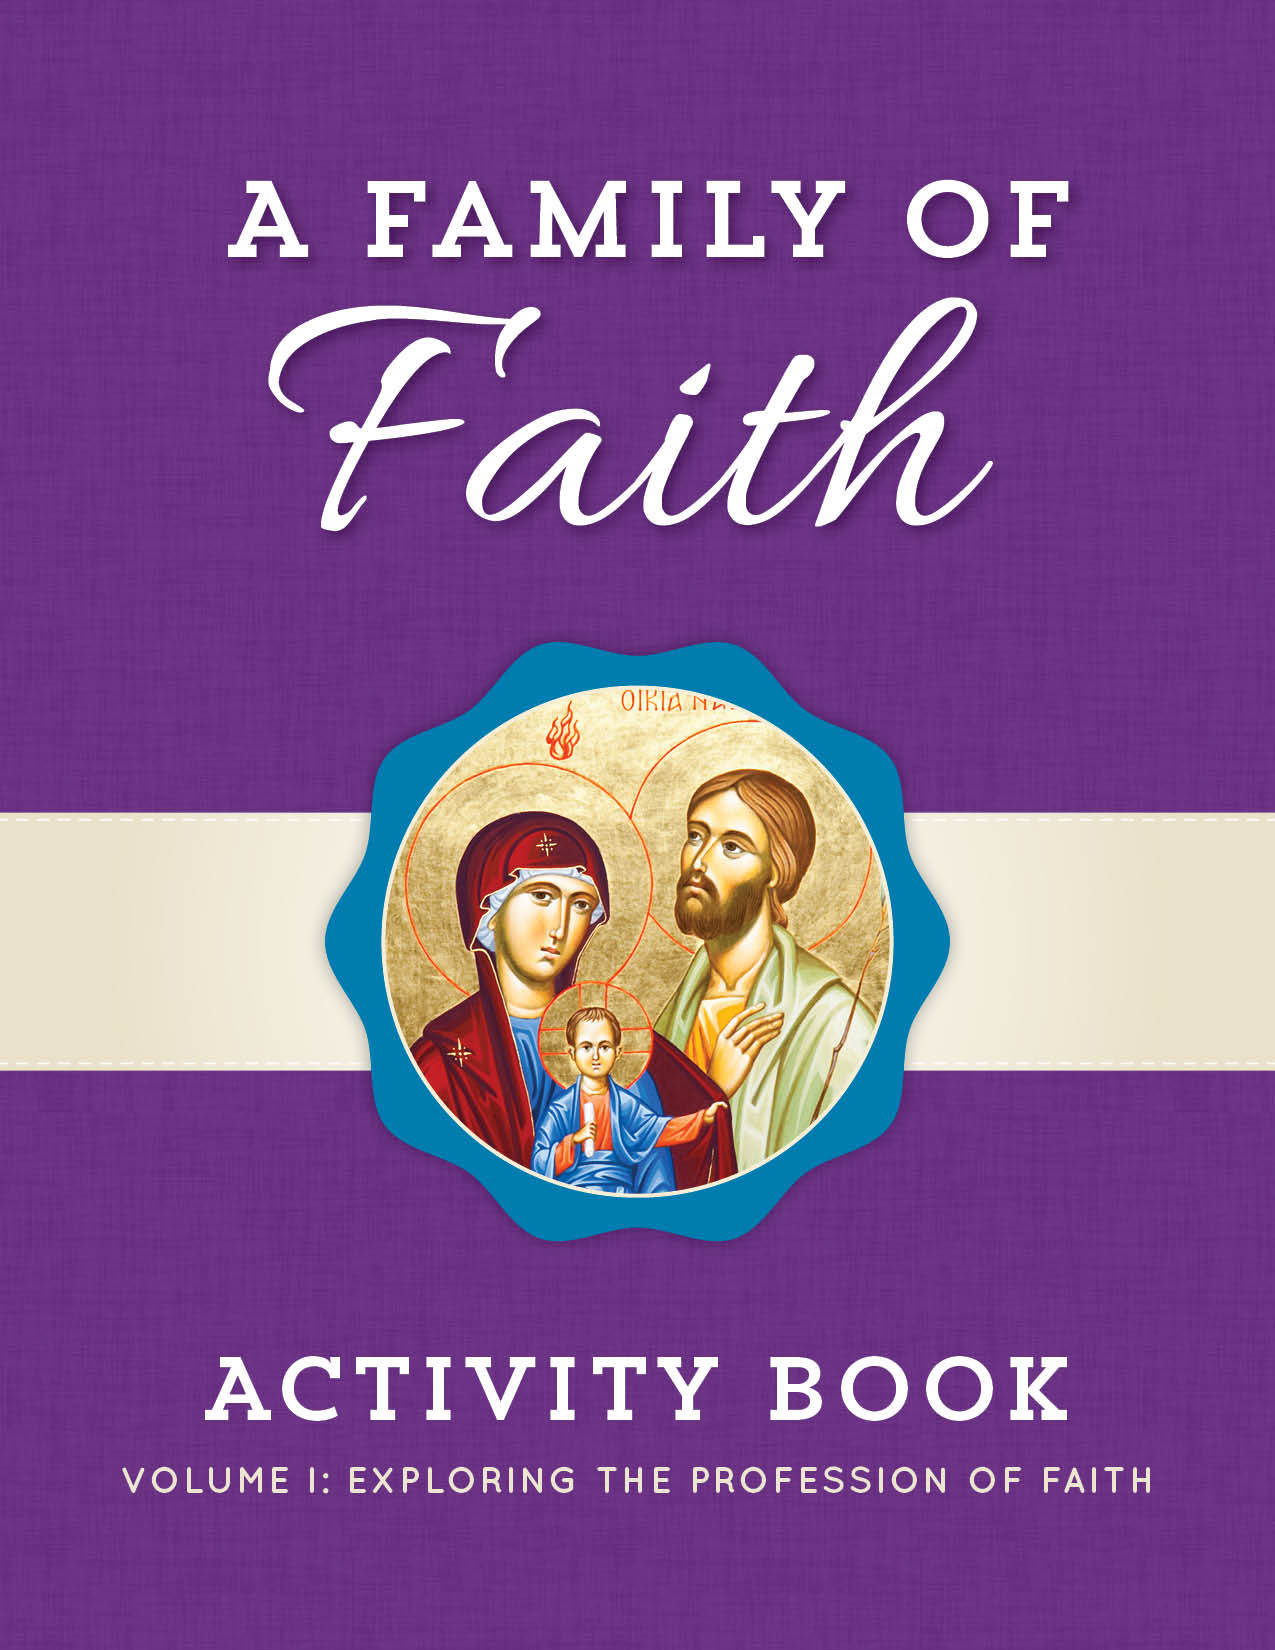 A Family of Faith Activity Book Volume I: Exploring the Profession of Faith